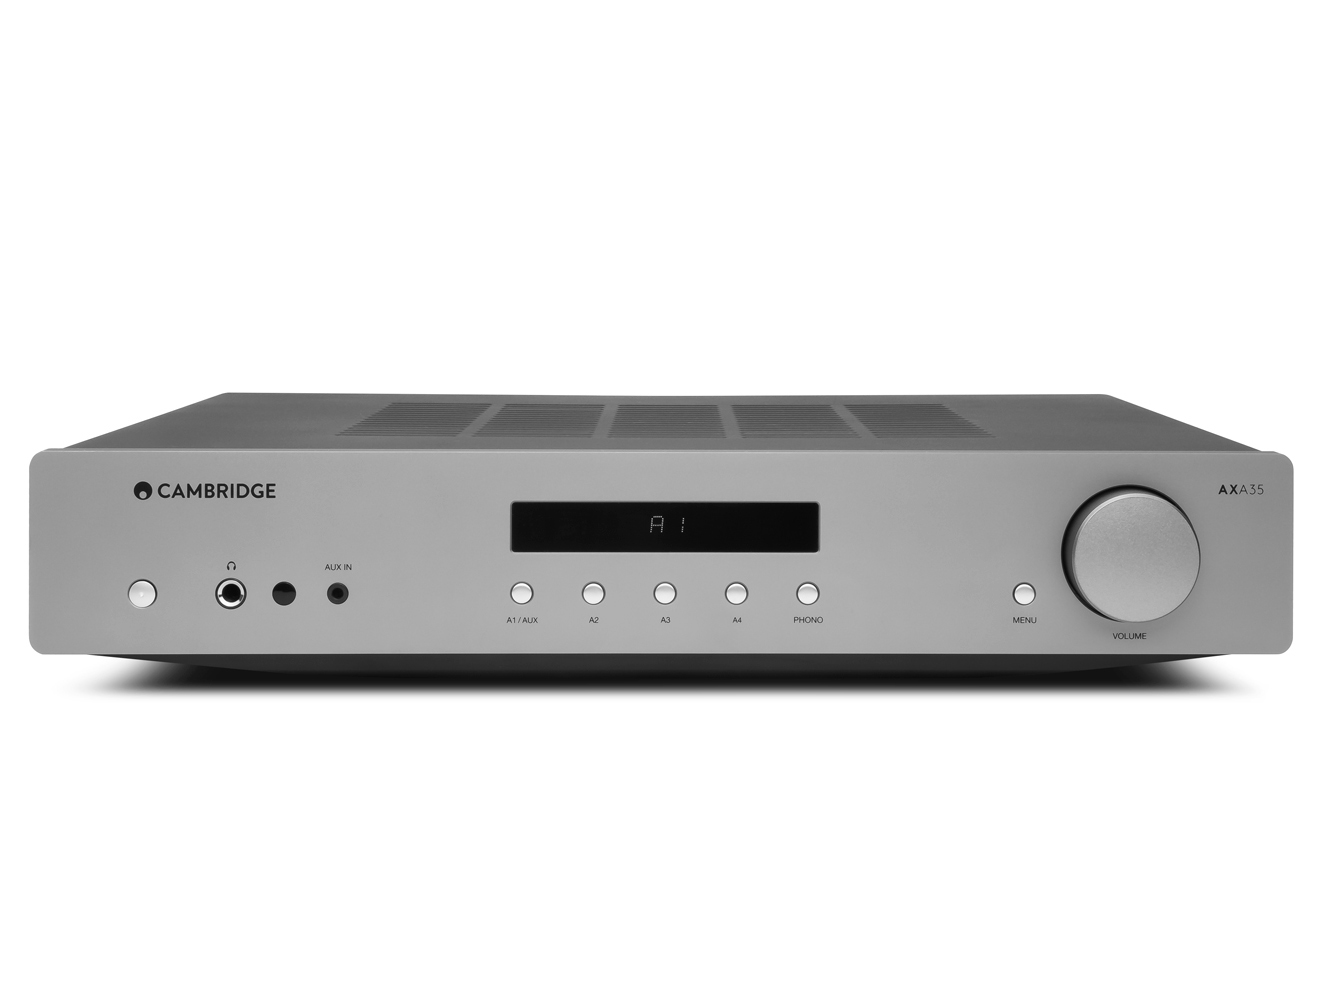 Powieksz do pelnego rozmiaru AXA 35, AXA-35, AXA35, AX A35, AX-A35,